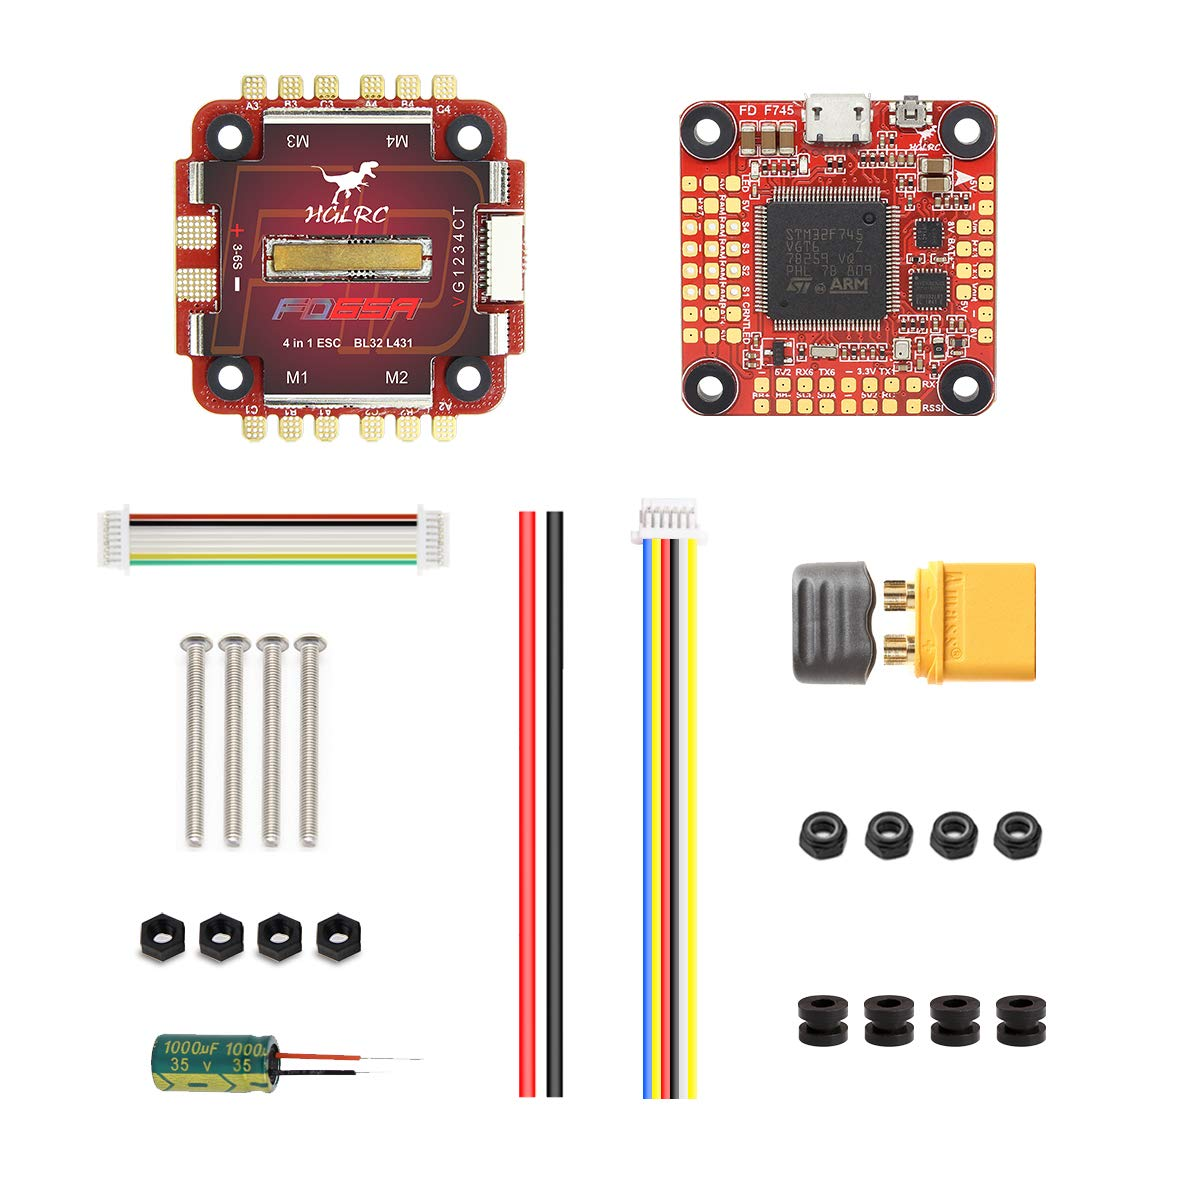 HGLRC Forward F765 FC Flight Stack Dual Gyro Flight Controller with BLHeli 32 65A ESC BLHeli32 6S 4 in 1 Dshot1200 Brushless ESC for FPV Racing Drone Quadcopter Race Quad Multicopter Helicopter